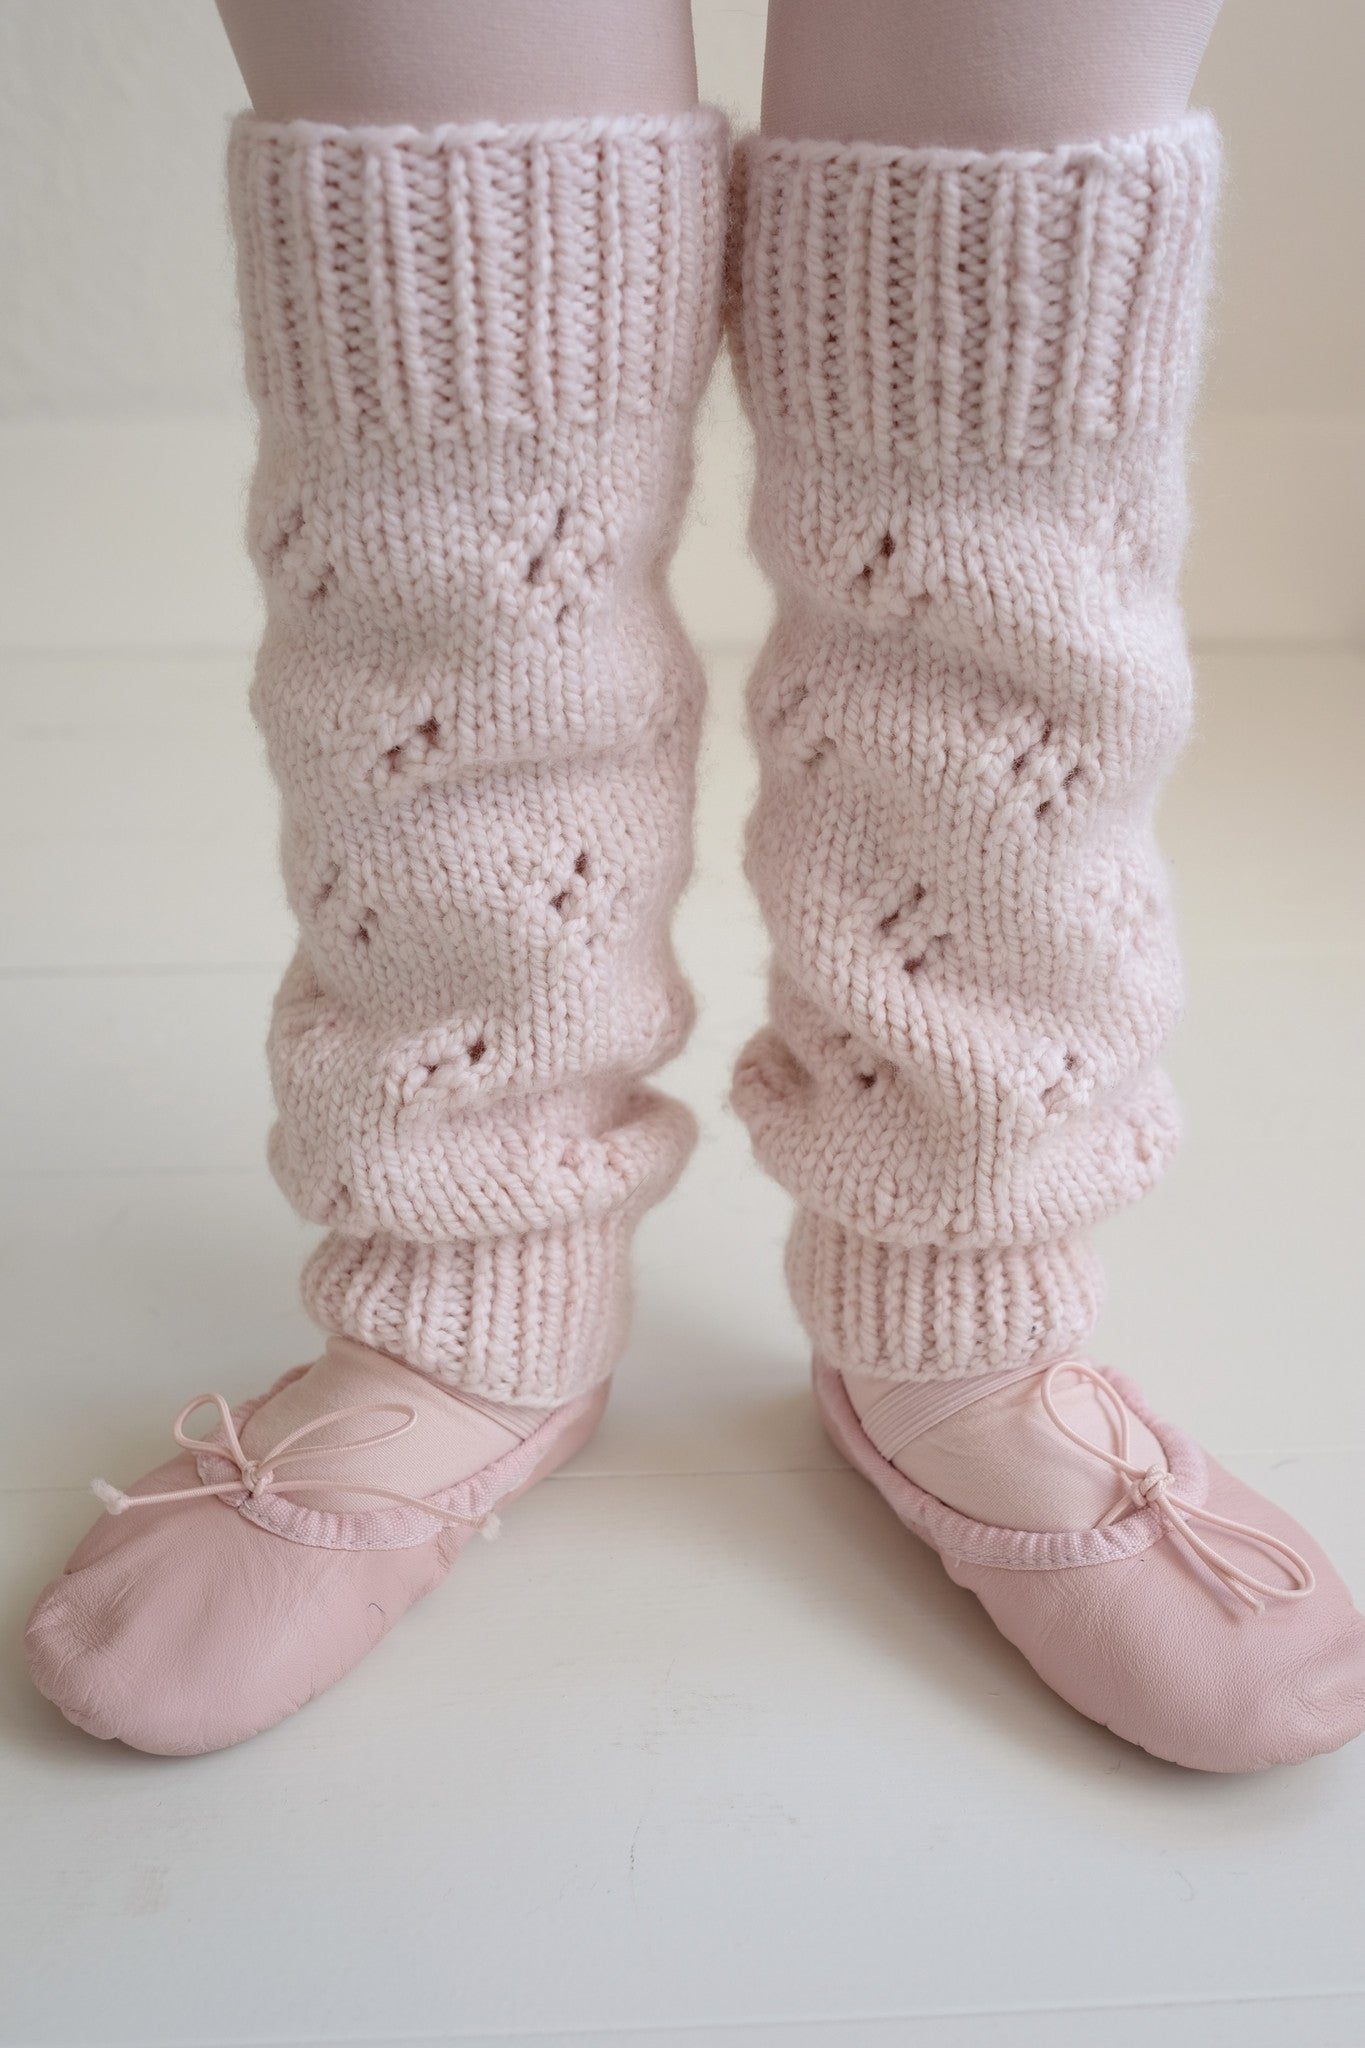 Eyelet Pattern Toddler Leg Warmers